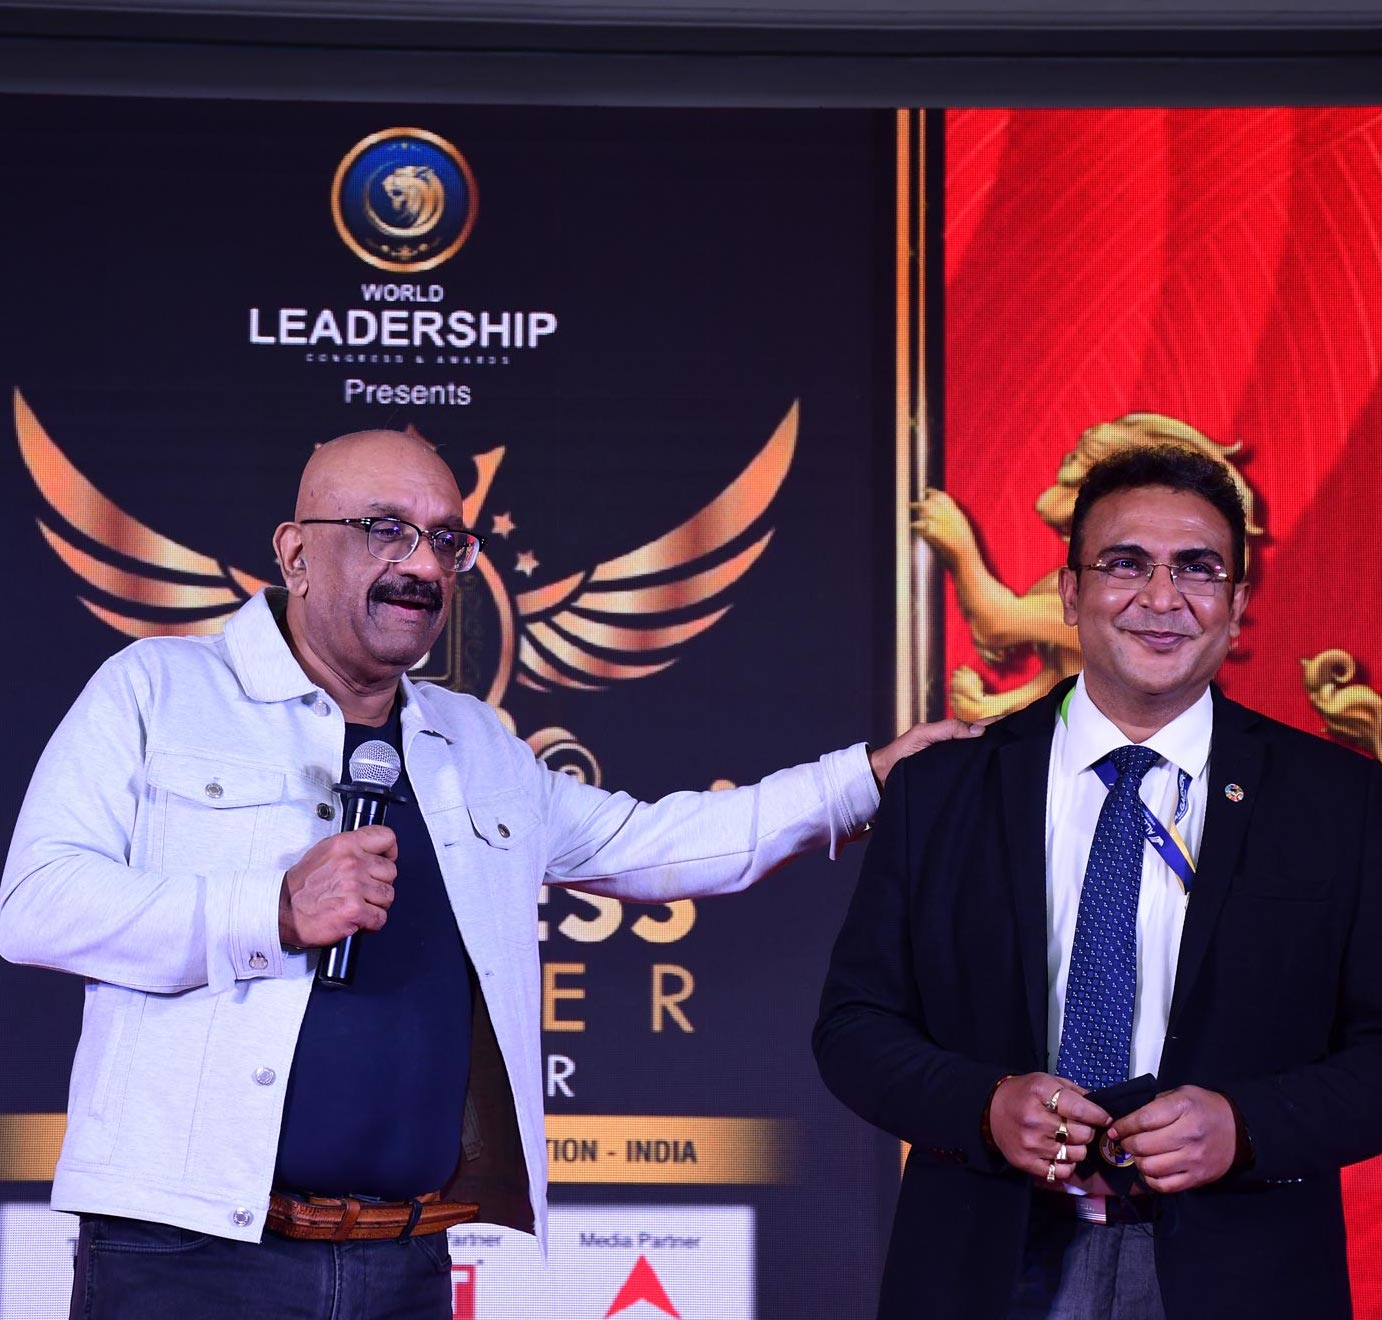 Debabrata Sarkar, Presidente de la filial de AlgaEnergy en la India, elegido 'Leader of the Year' en el World Leadership Congress